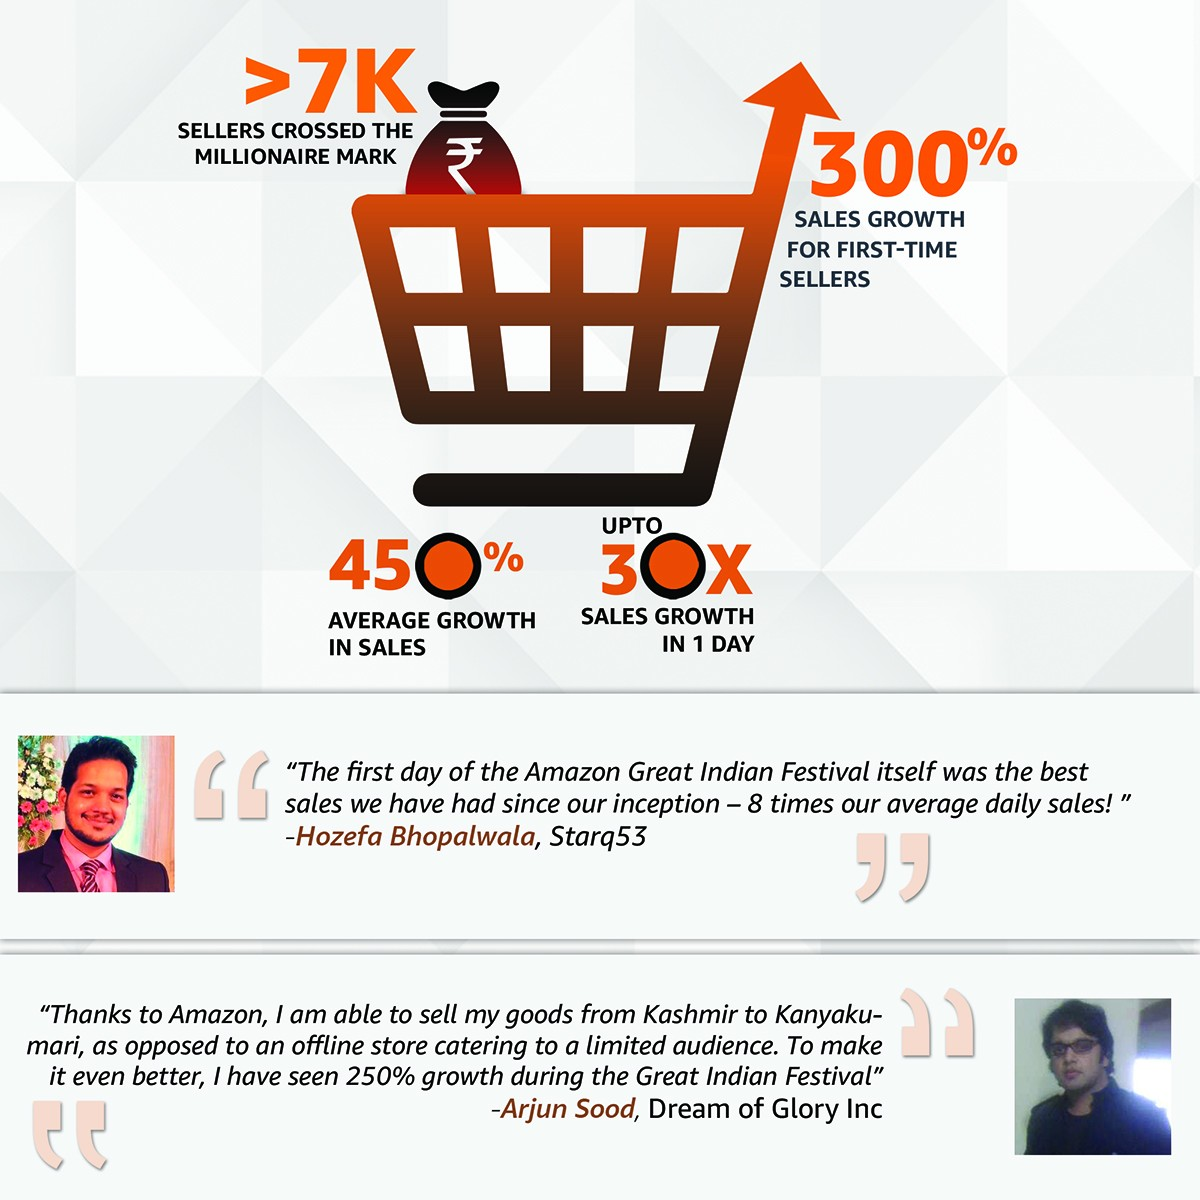 Amazon Great Indian Sale Wave 1 Statistics and Testimonials